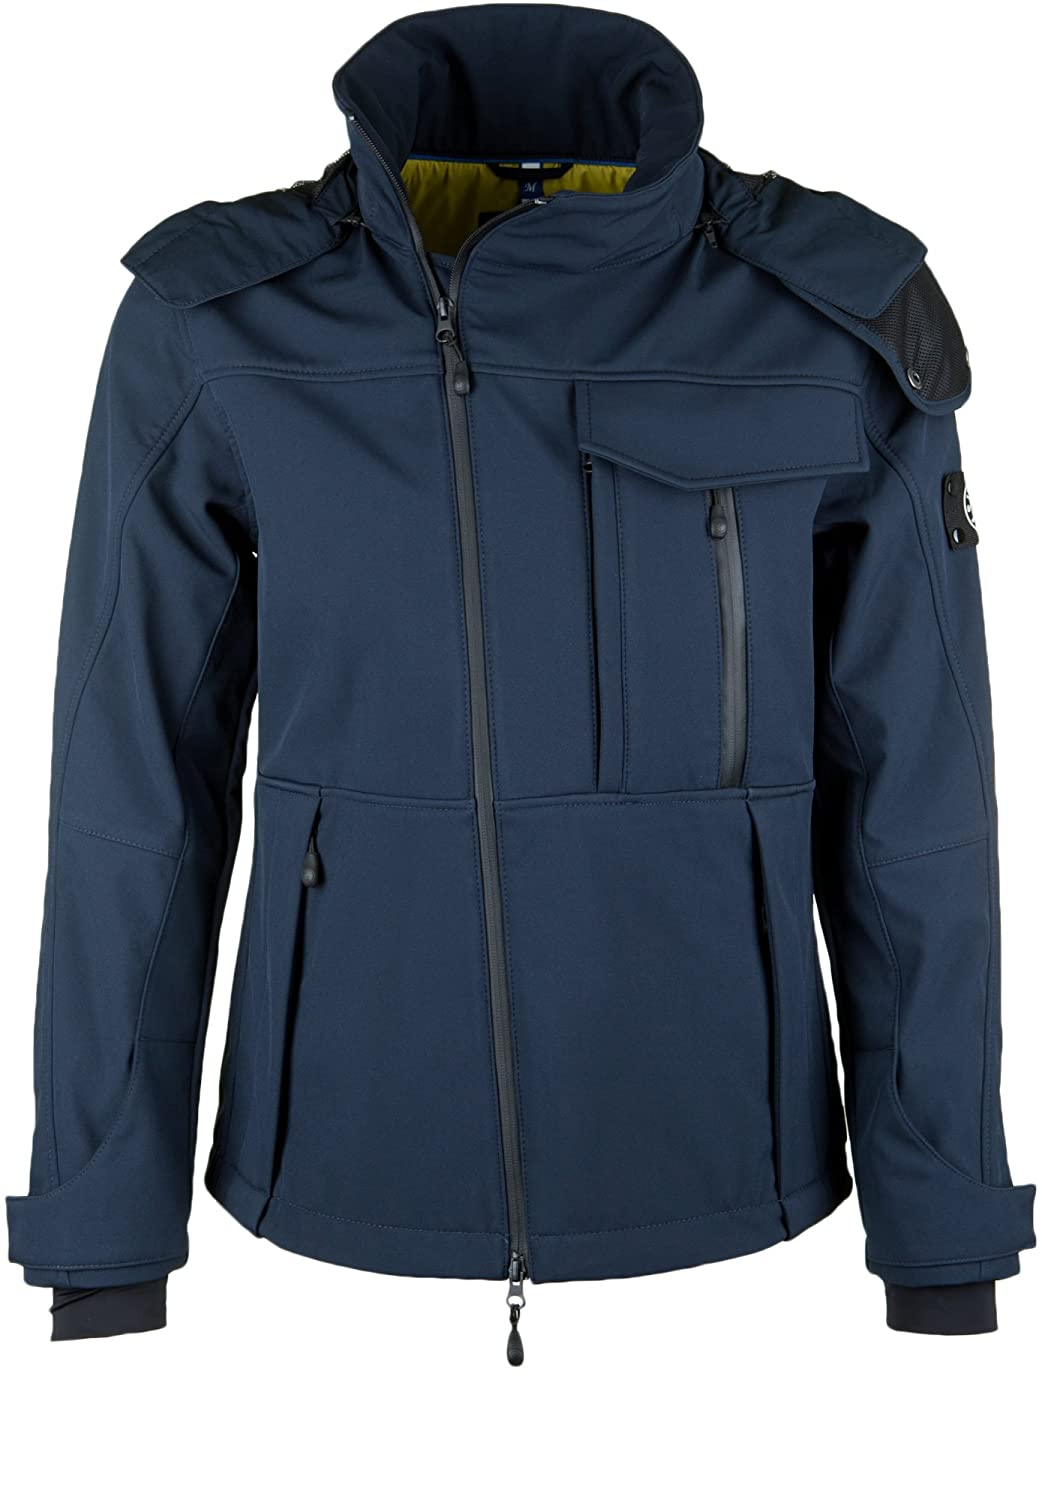 SAILORS & BRIDES Herren Softshelljacke SKIPPER